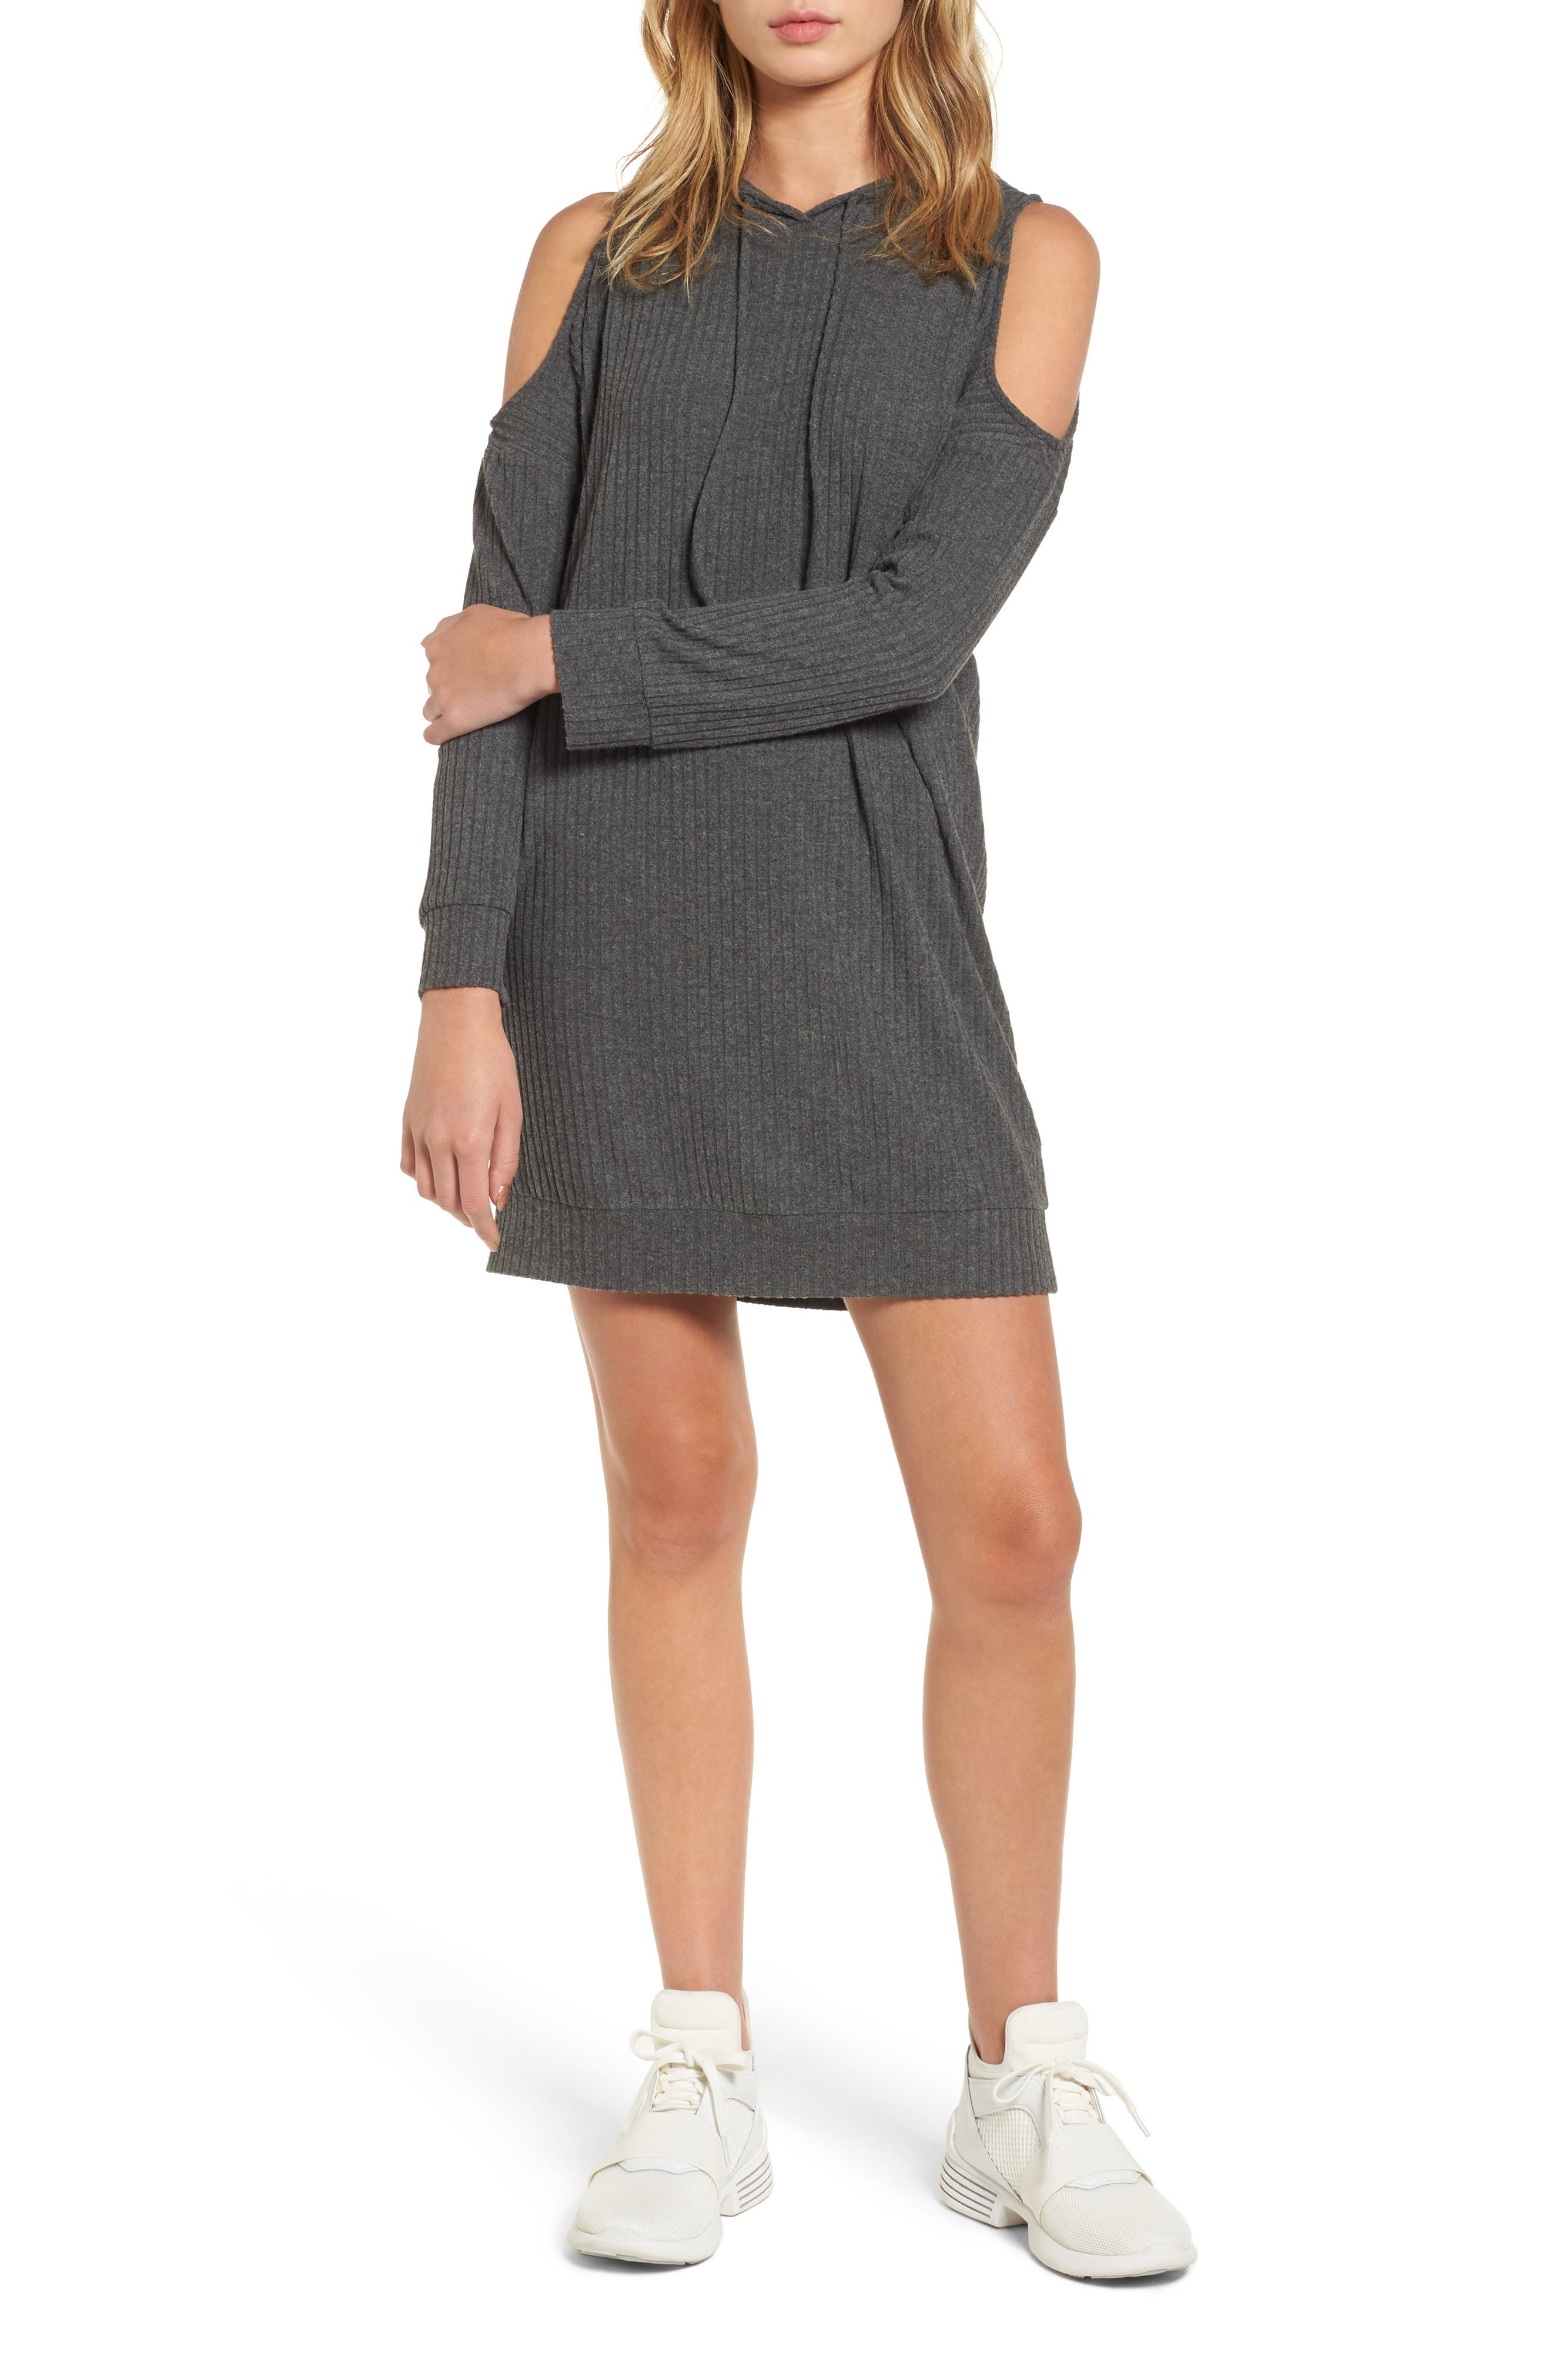 Main Image - One Clothing Cold Shoulder Hoodie Dress